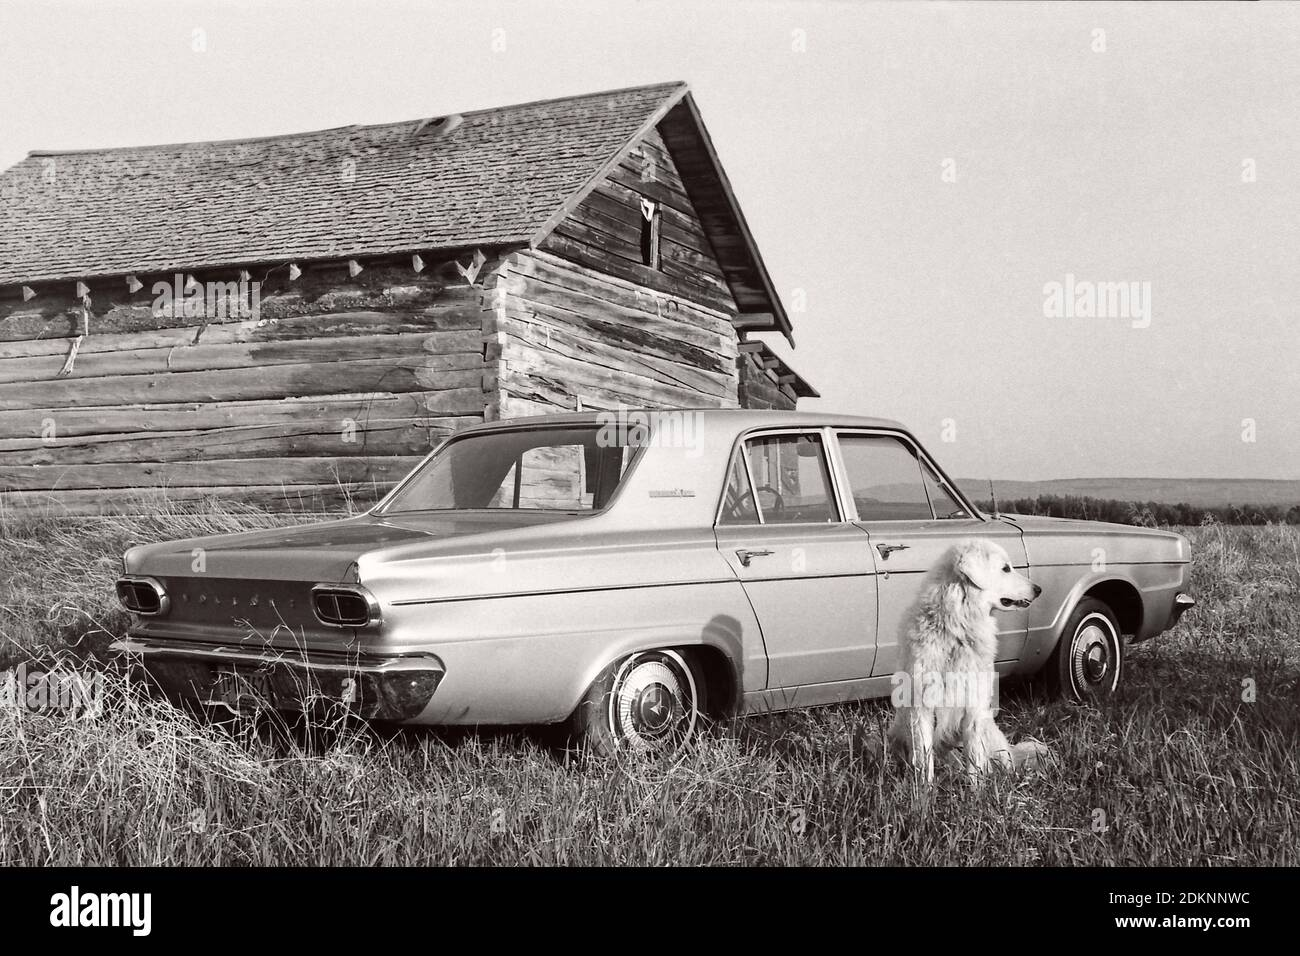 vintage-dovetail-corner-notched-pioneer-cabin-with-a-1966-dodge-dart-4-door-and-a-kuvasz-dog-rural-alberta-canada-1976-2DKNNWC.jpg